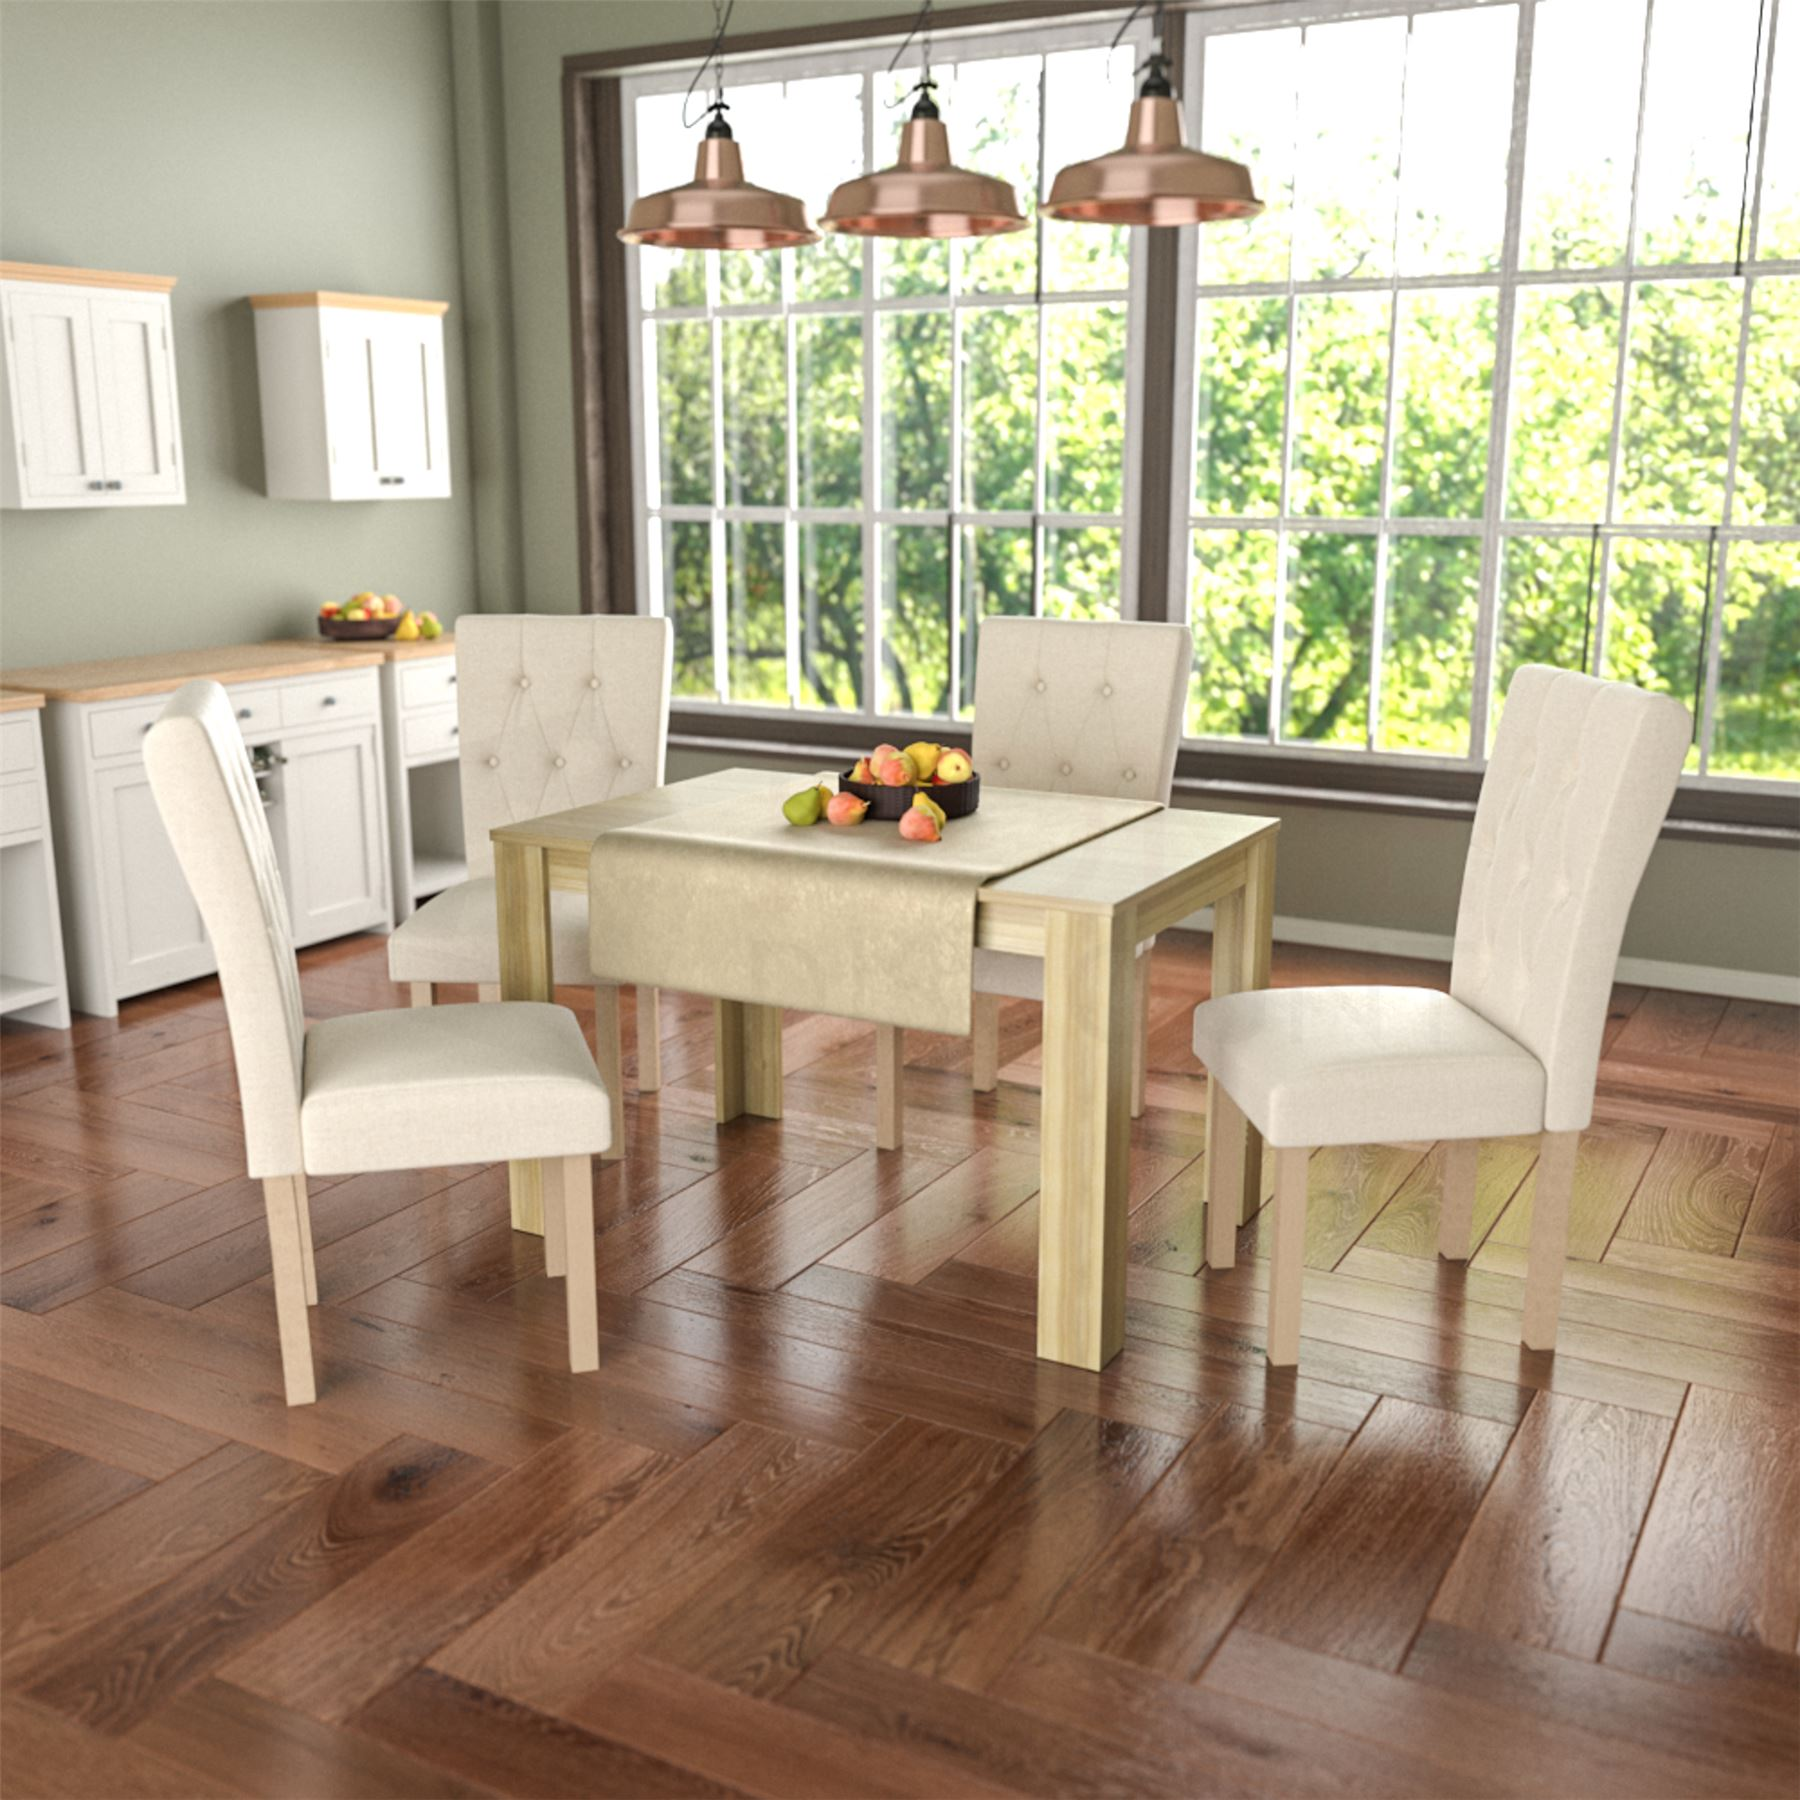 new product ba04b 6960d Details about Dining Table & 4 Chairs Set Wood Fabric Dining Room Kitchen  Oak Cream and Oak